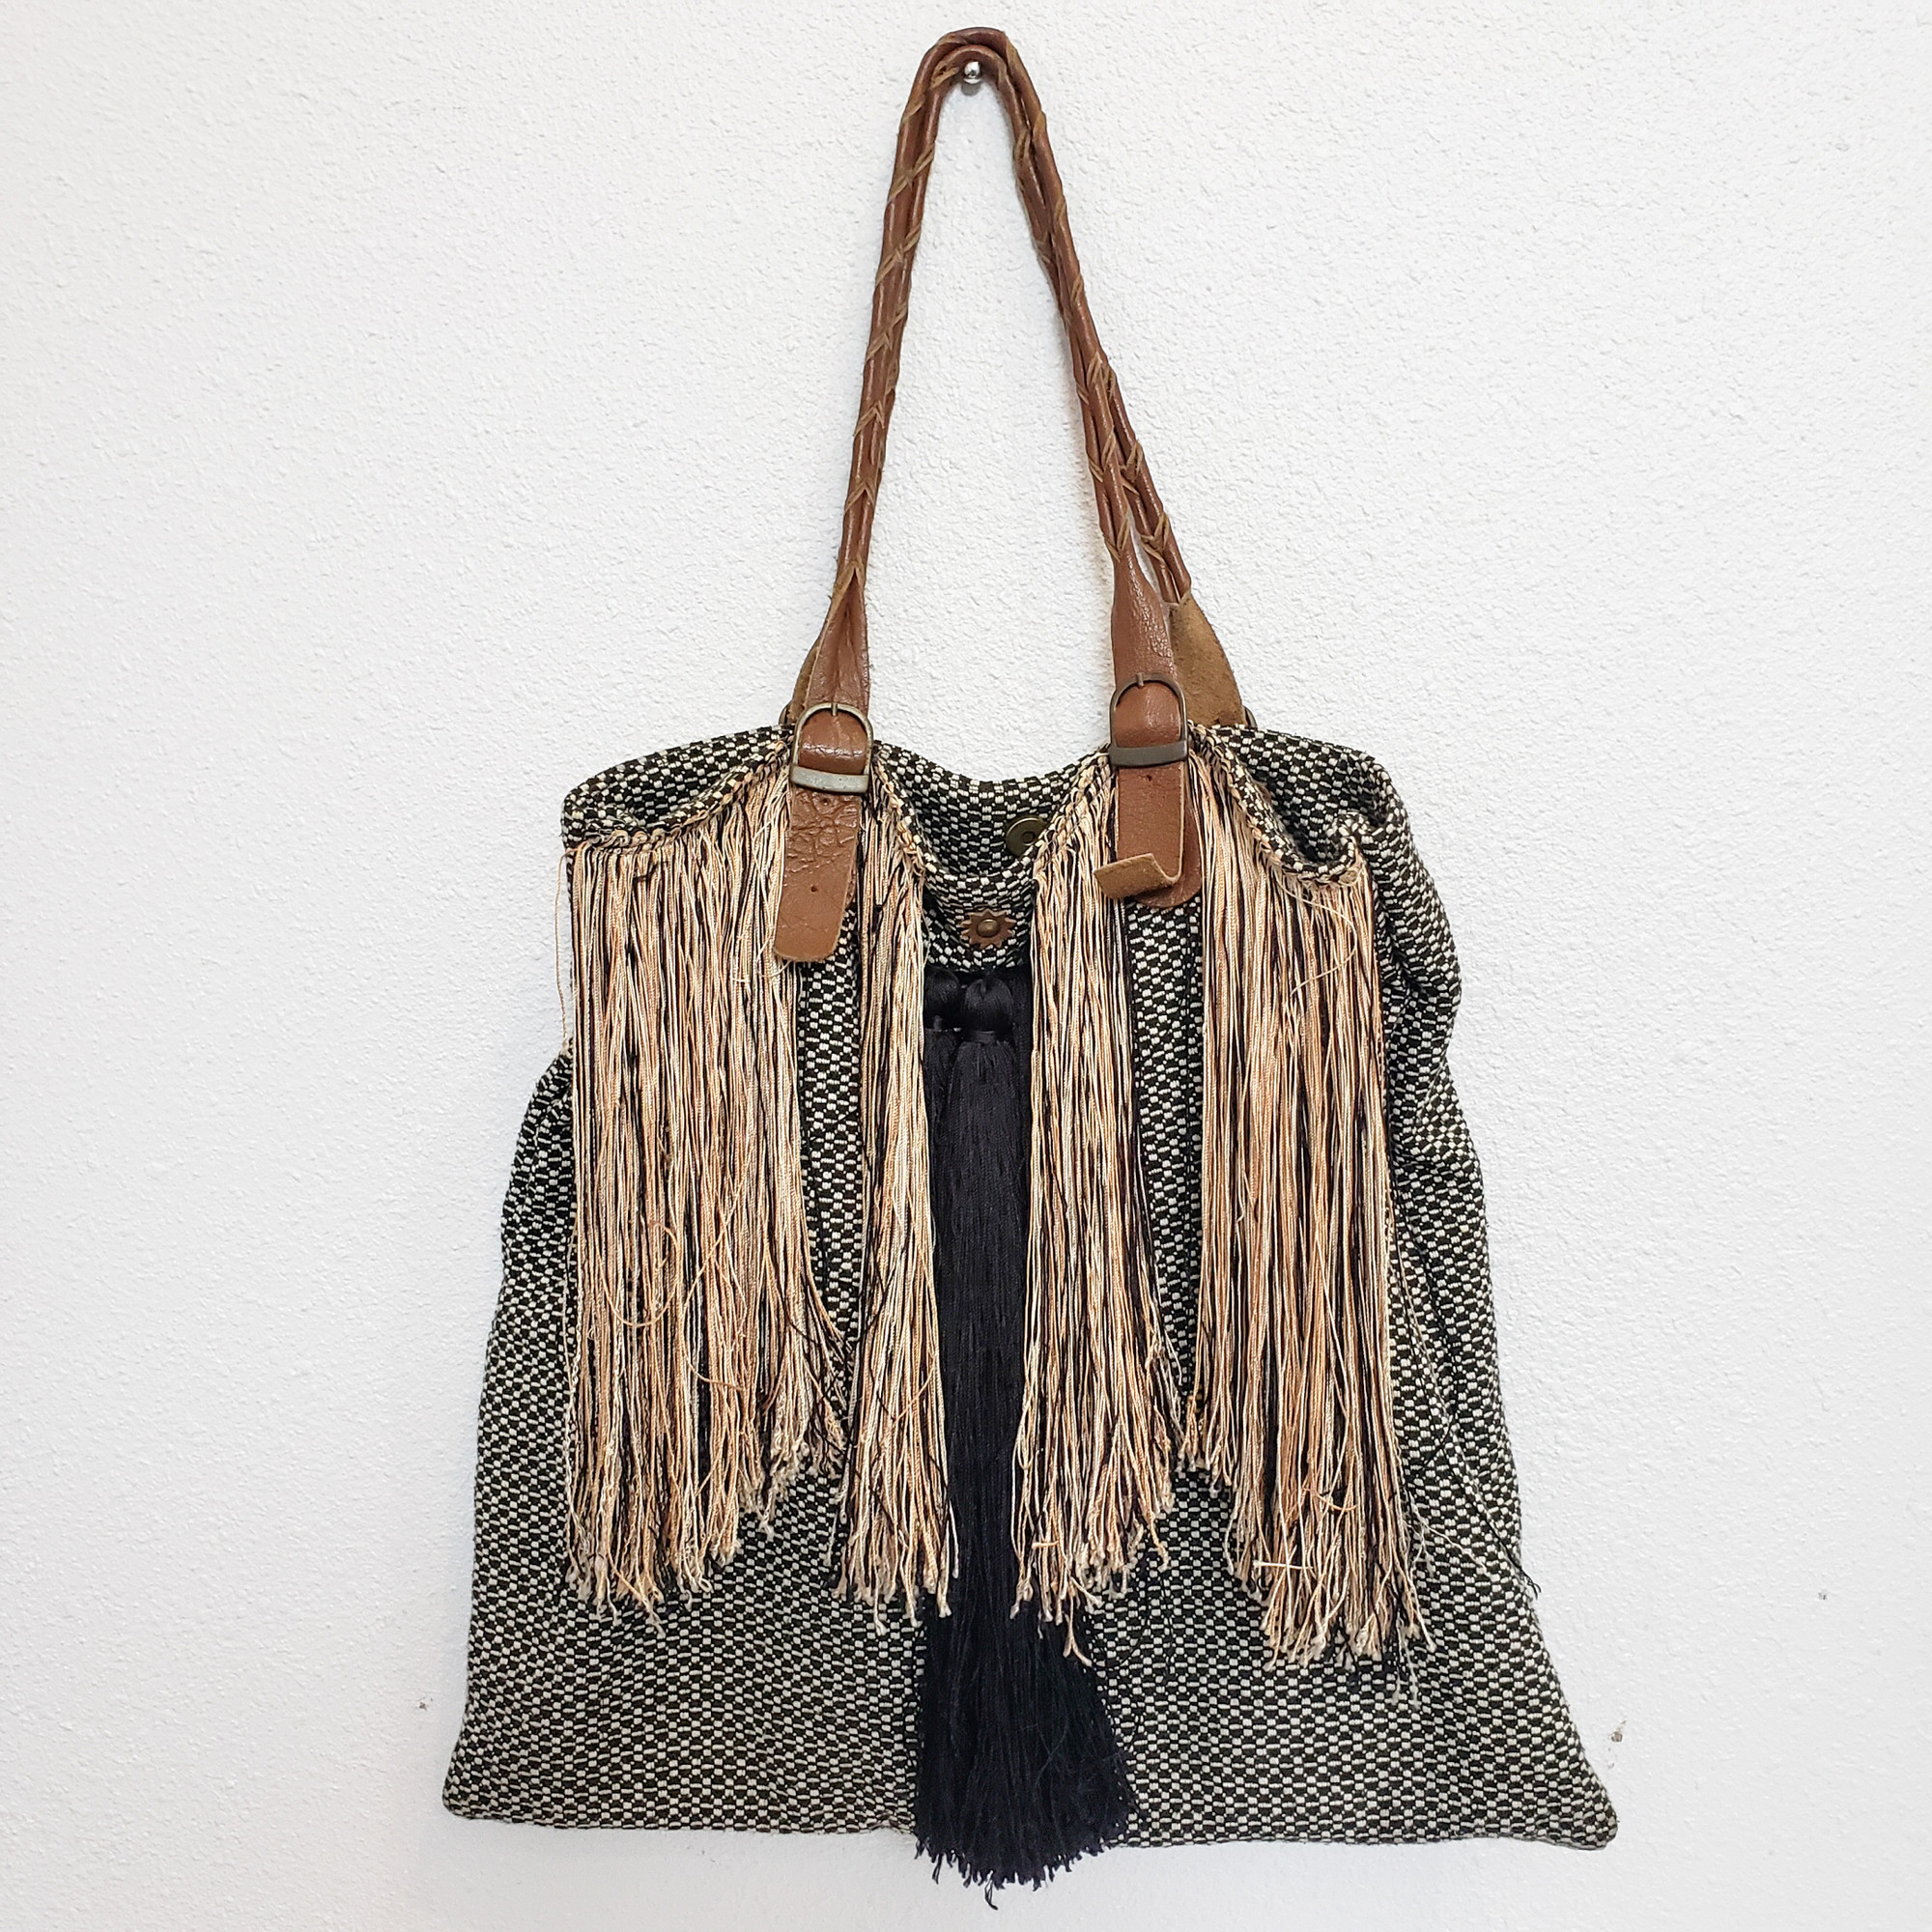 Jasper & Jeera<br /> Black and Tan Fringed Satchel<br /> From Anthropologie